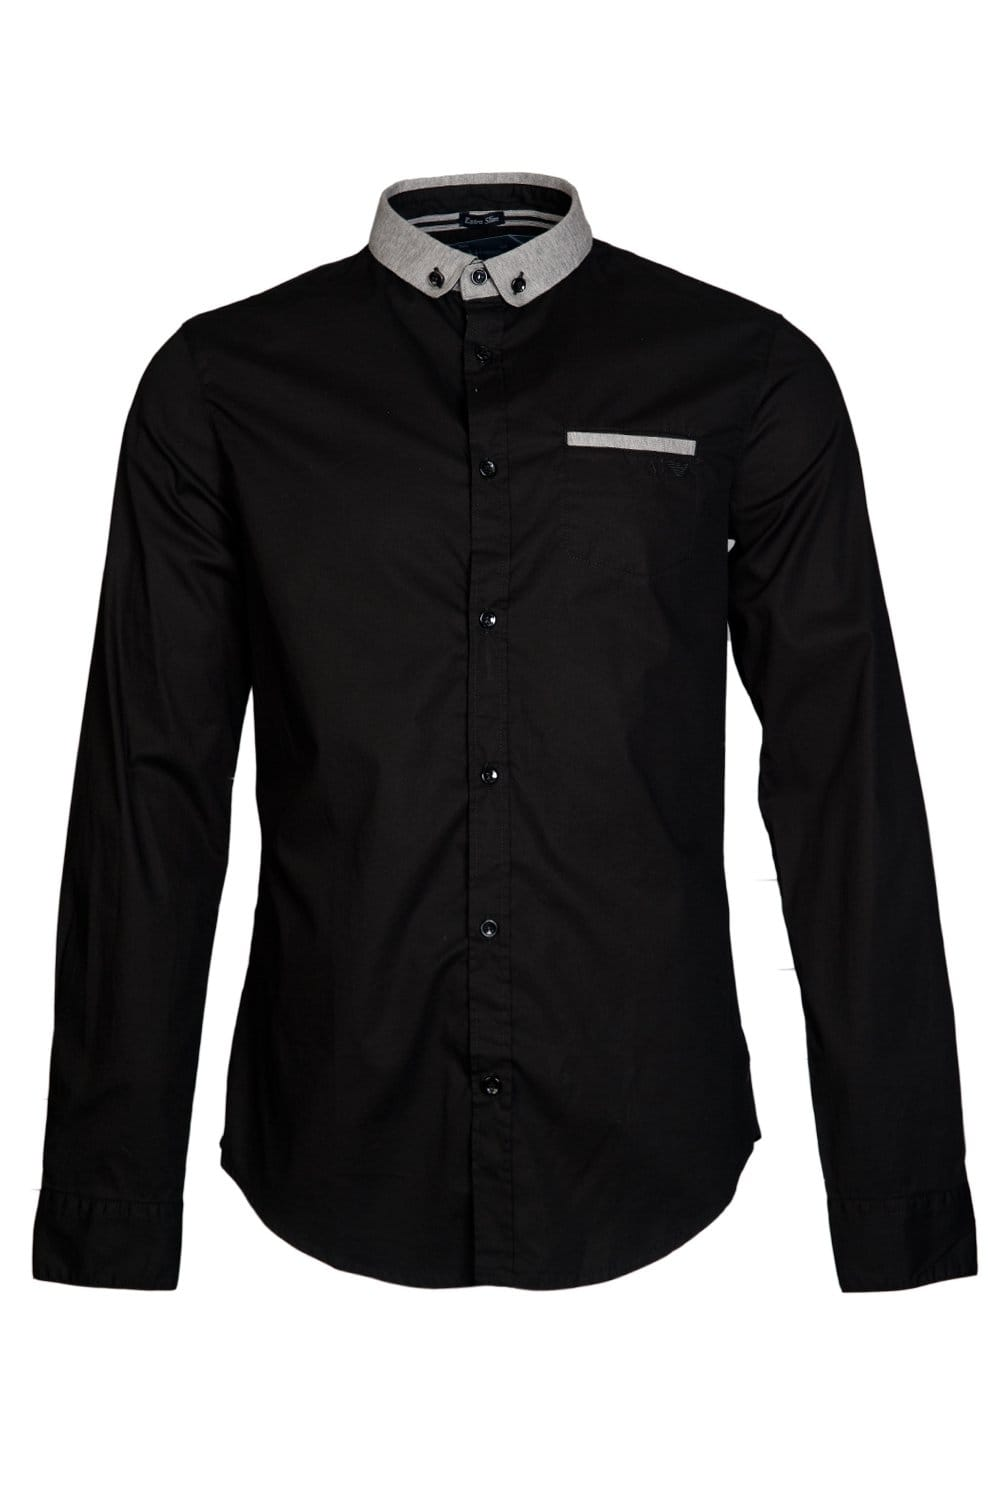 Armani jeans extra slim fit shirt in black white and navy for Extra slim dress shirt